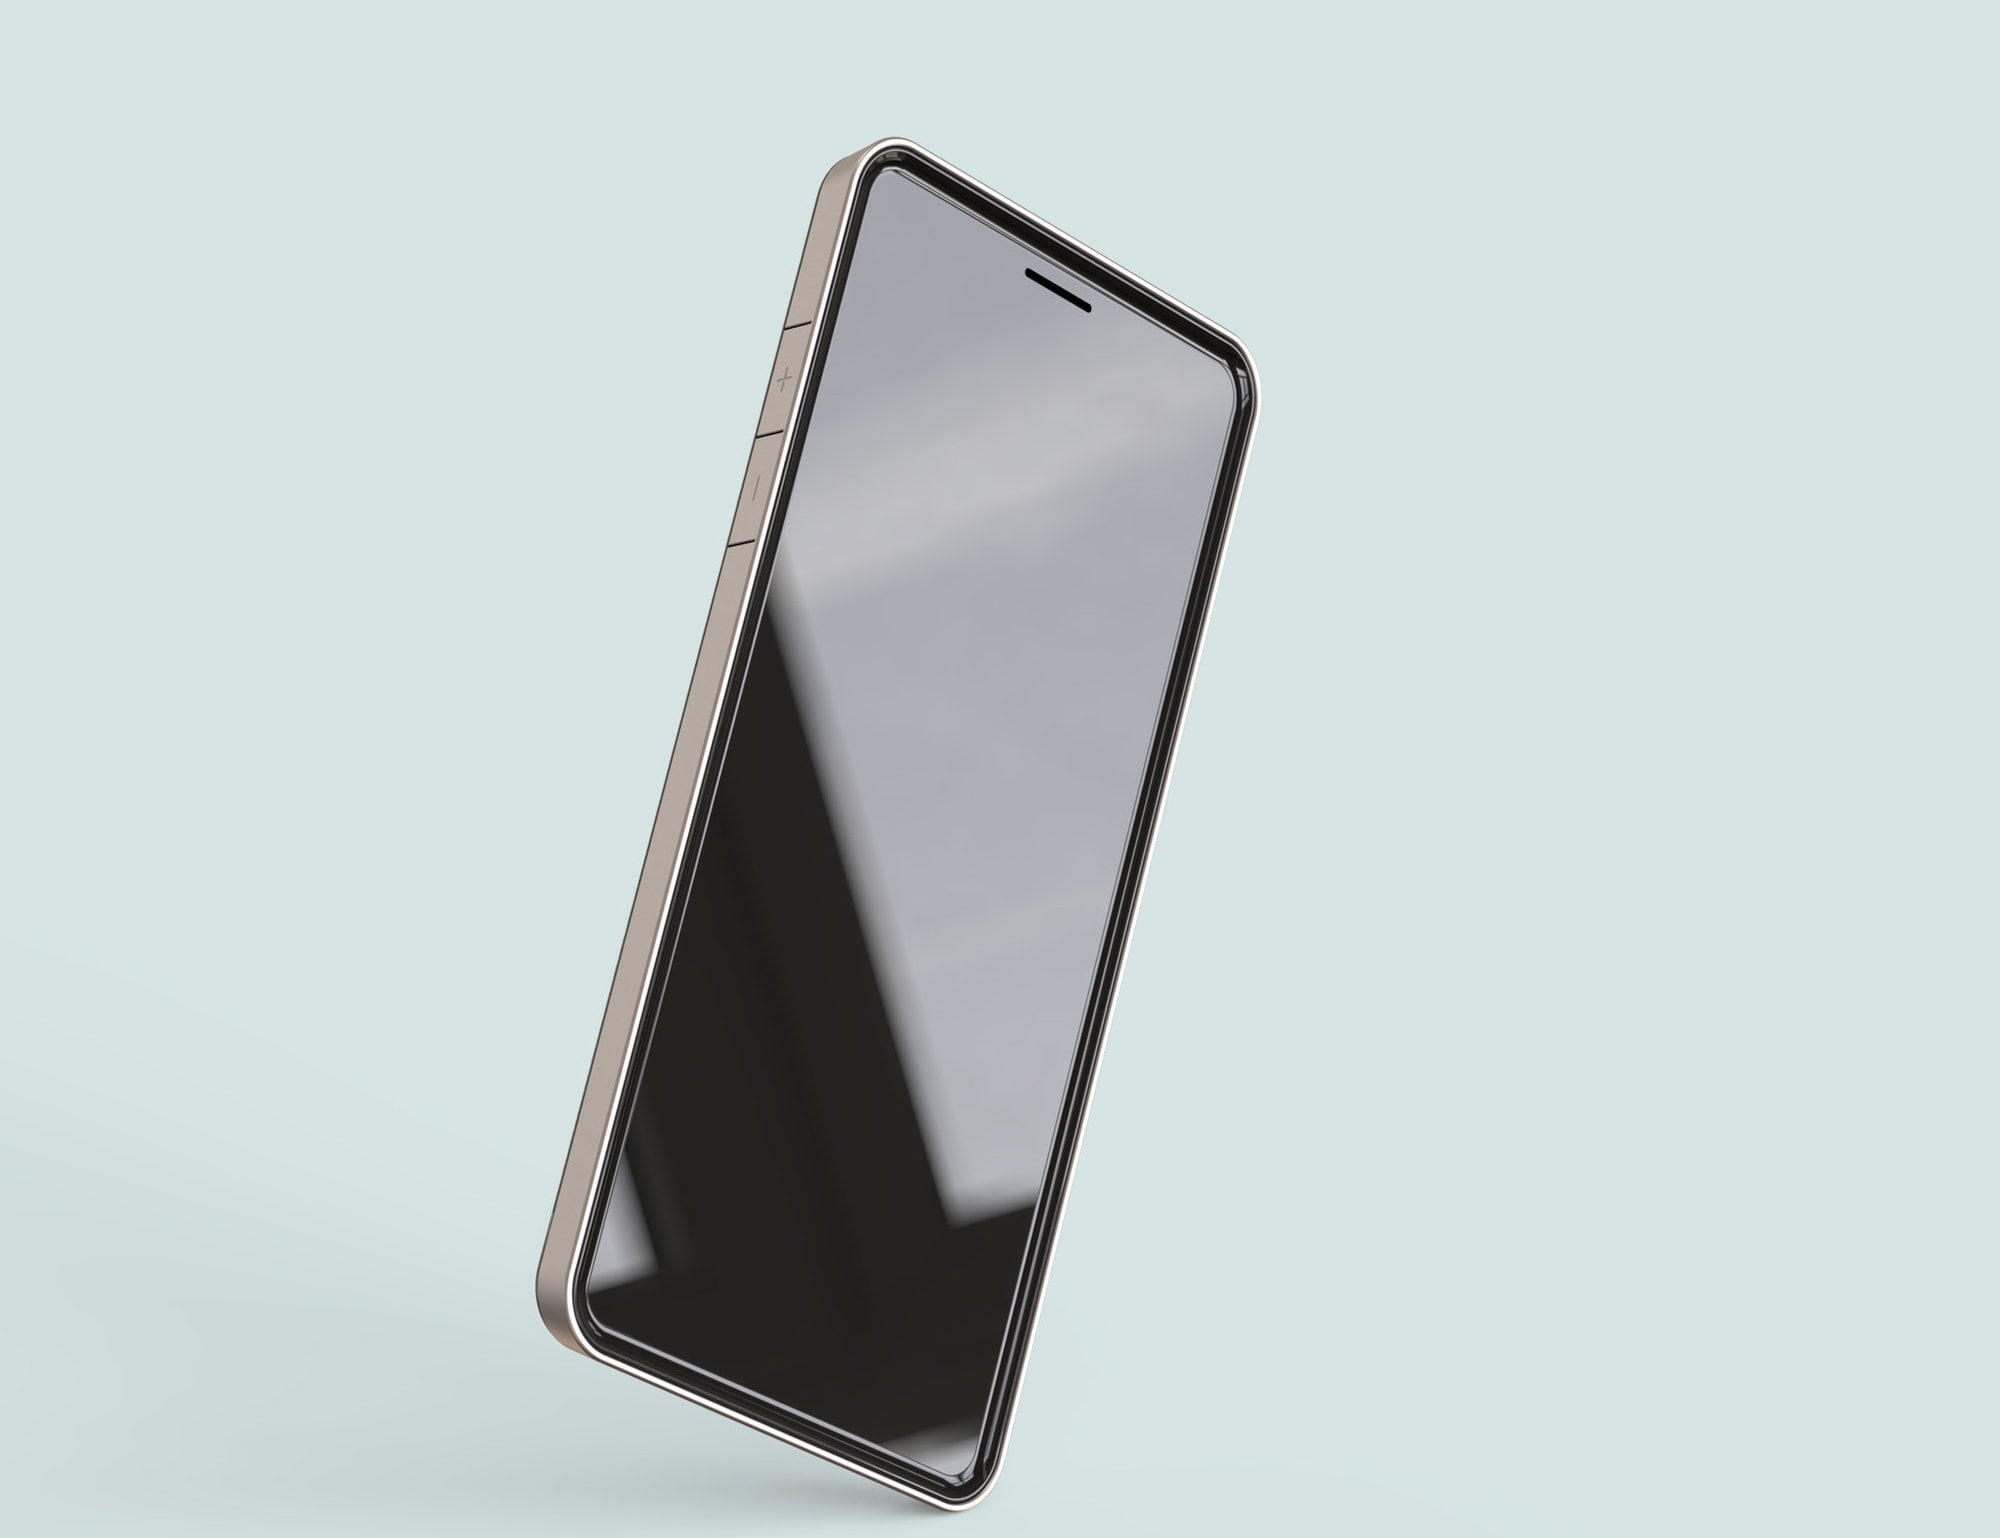 Morrama User-Friendly Smartphone is designed to help you stay in the moment